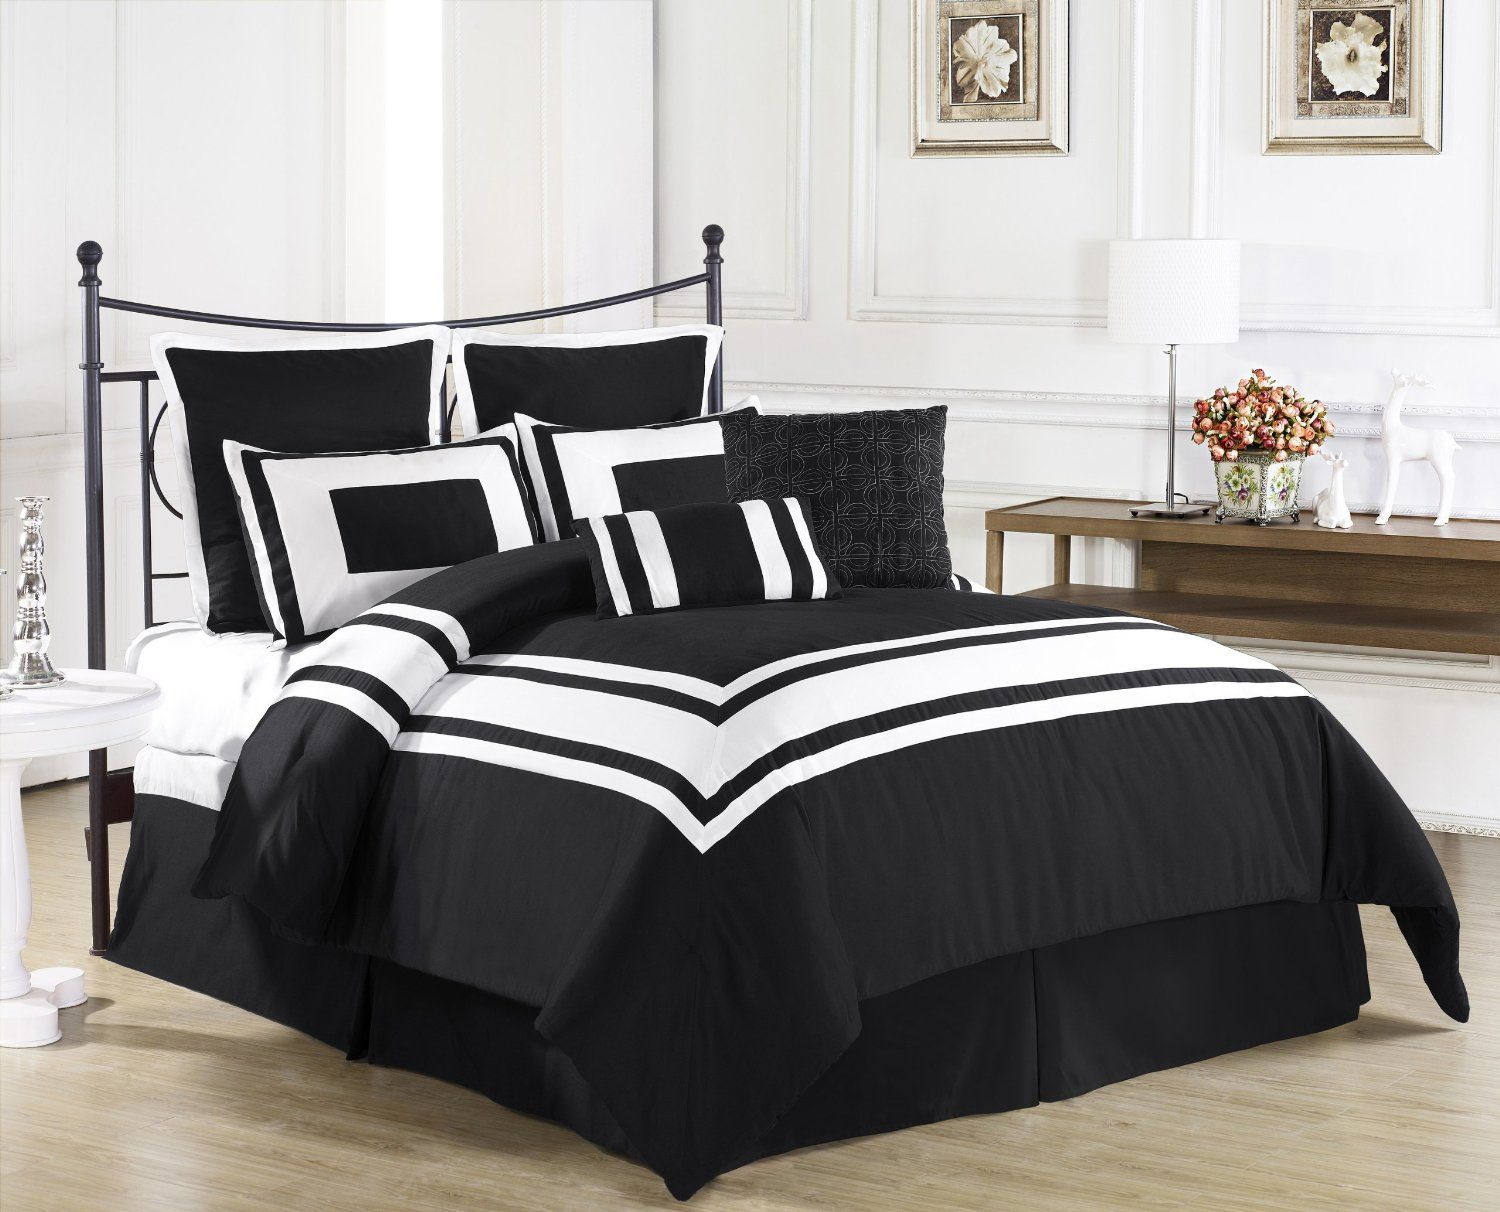 Amazon.com: Cozy Beddings Lux Decor Collection 8 Piece Comforter Set With  White Stripes, Queen, Grey: Home U0026 Kitchen